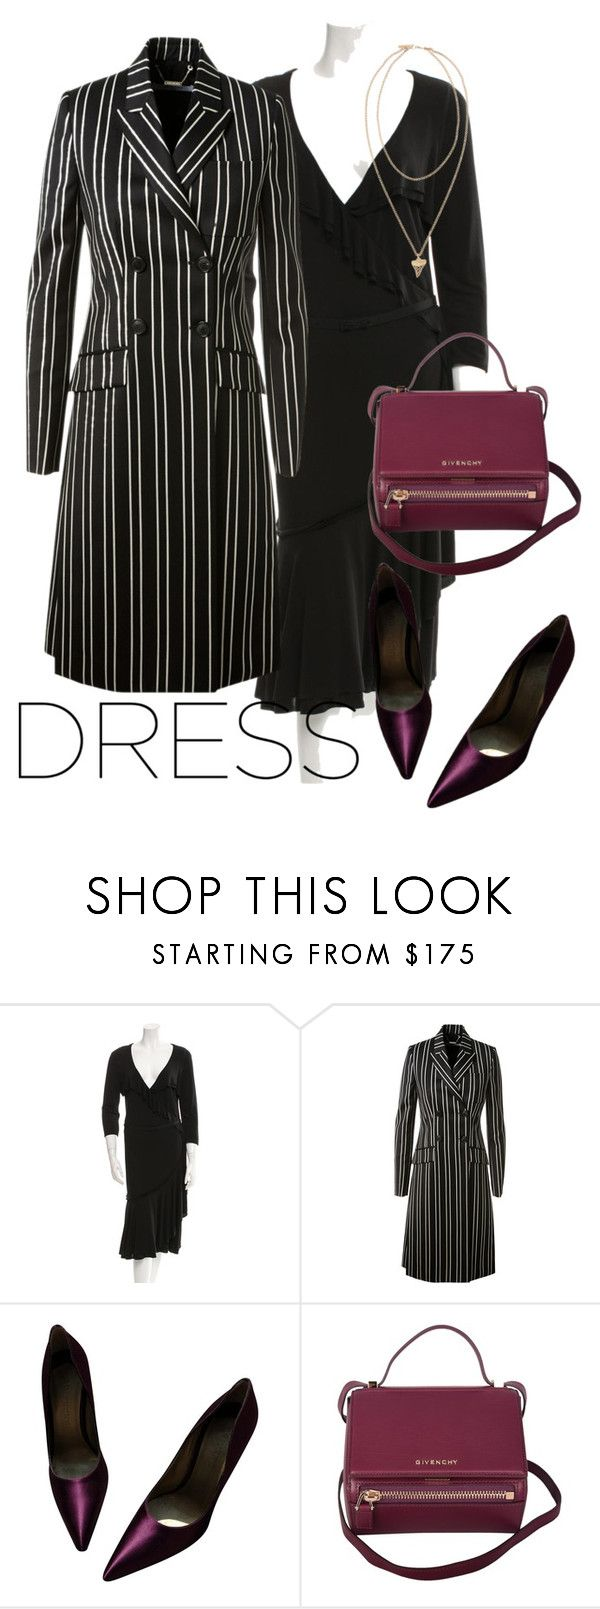 """""""DRESS     givenchy"""" by masayuki4499 ❤ liked on Polyvore featuring Givenchy"""